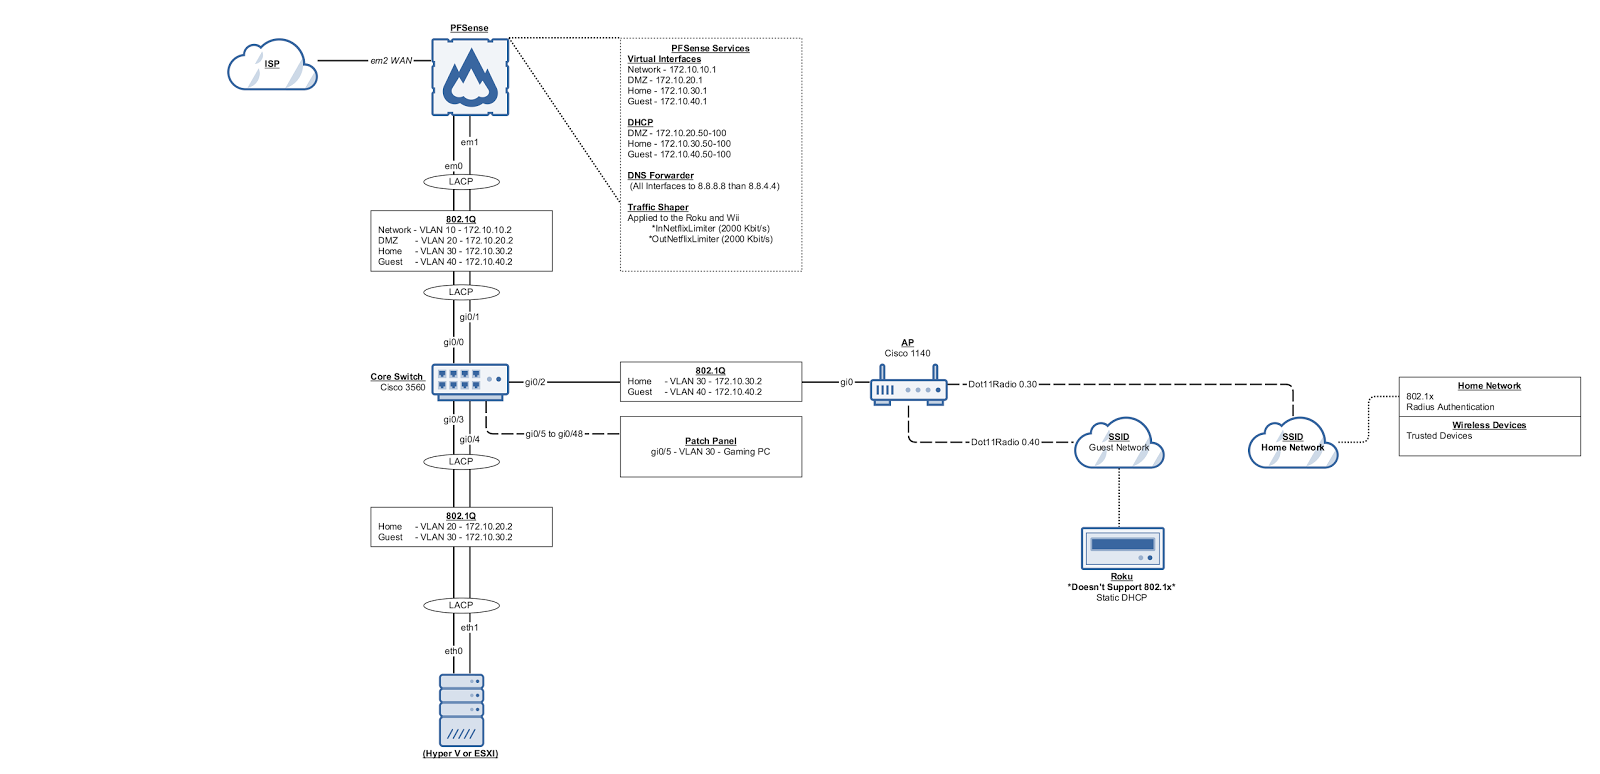 Related image with network topology fully connected network topology diagram network